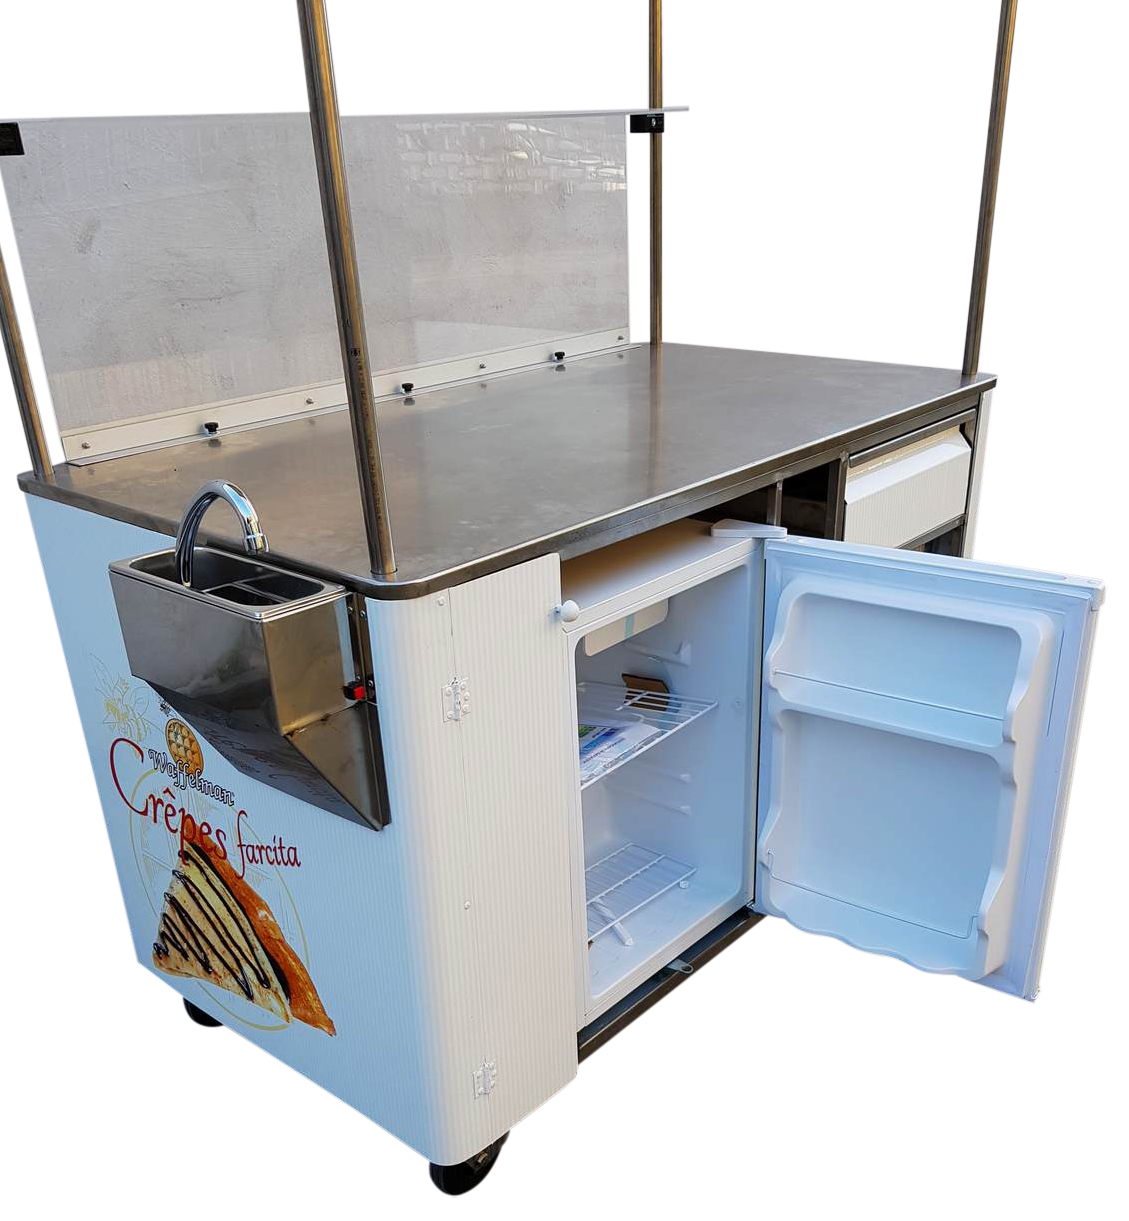 CARRELLO_A_SPINTA_PUSH_CART_per_CREPES_e_WAFFEL_05